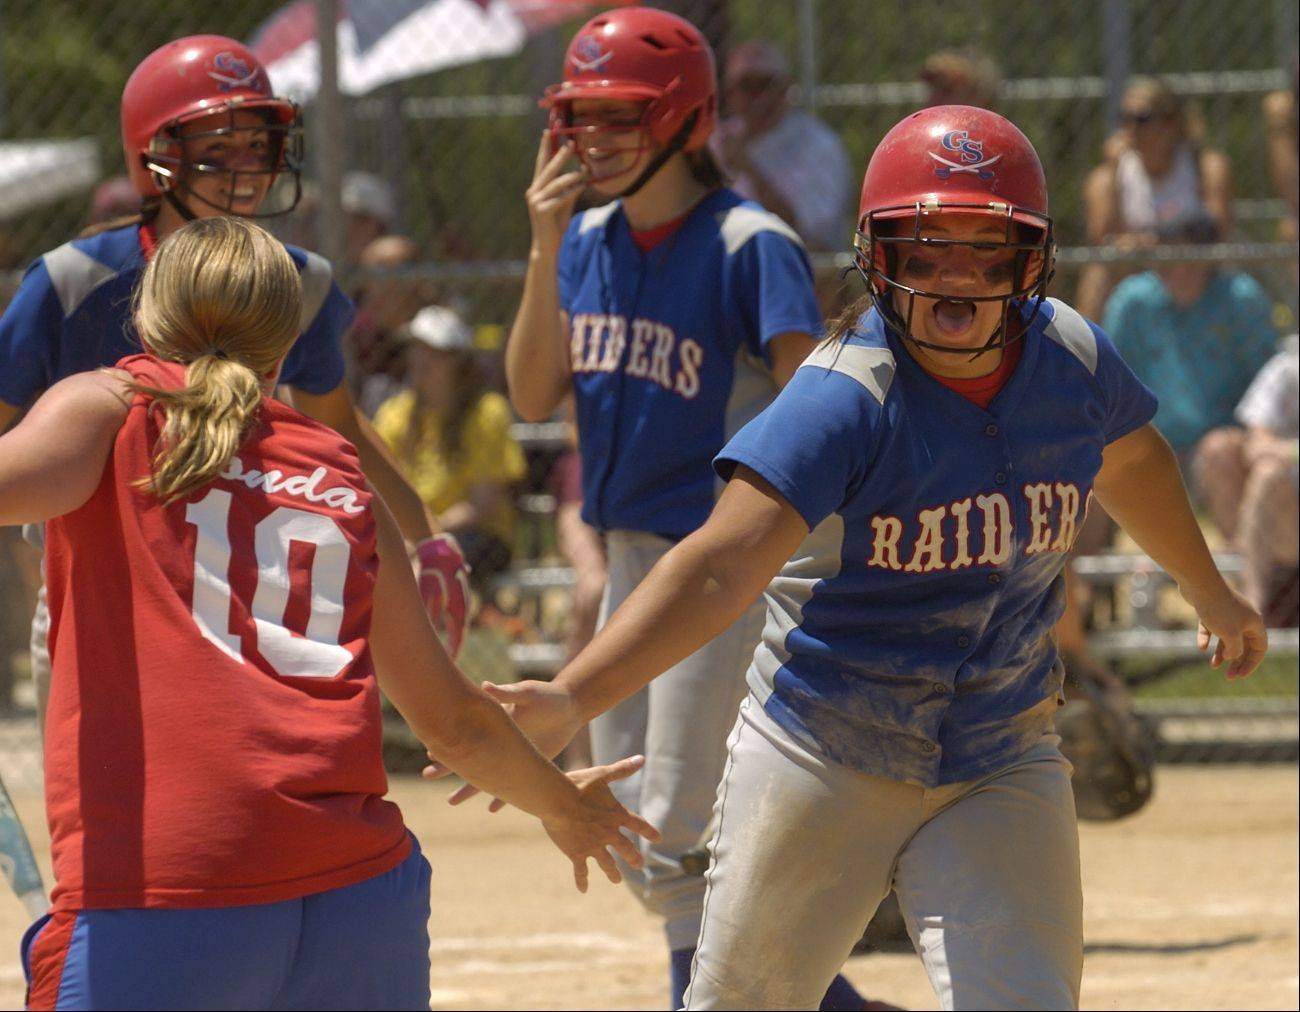 Glenbard South's Olivia Ramirez is congratulated by coach Julie Fonda after scoring first of 2 Raiders runs in the fourth inning of the Class 3A softball state final against Marengo.